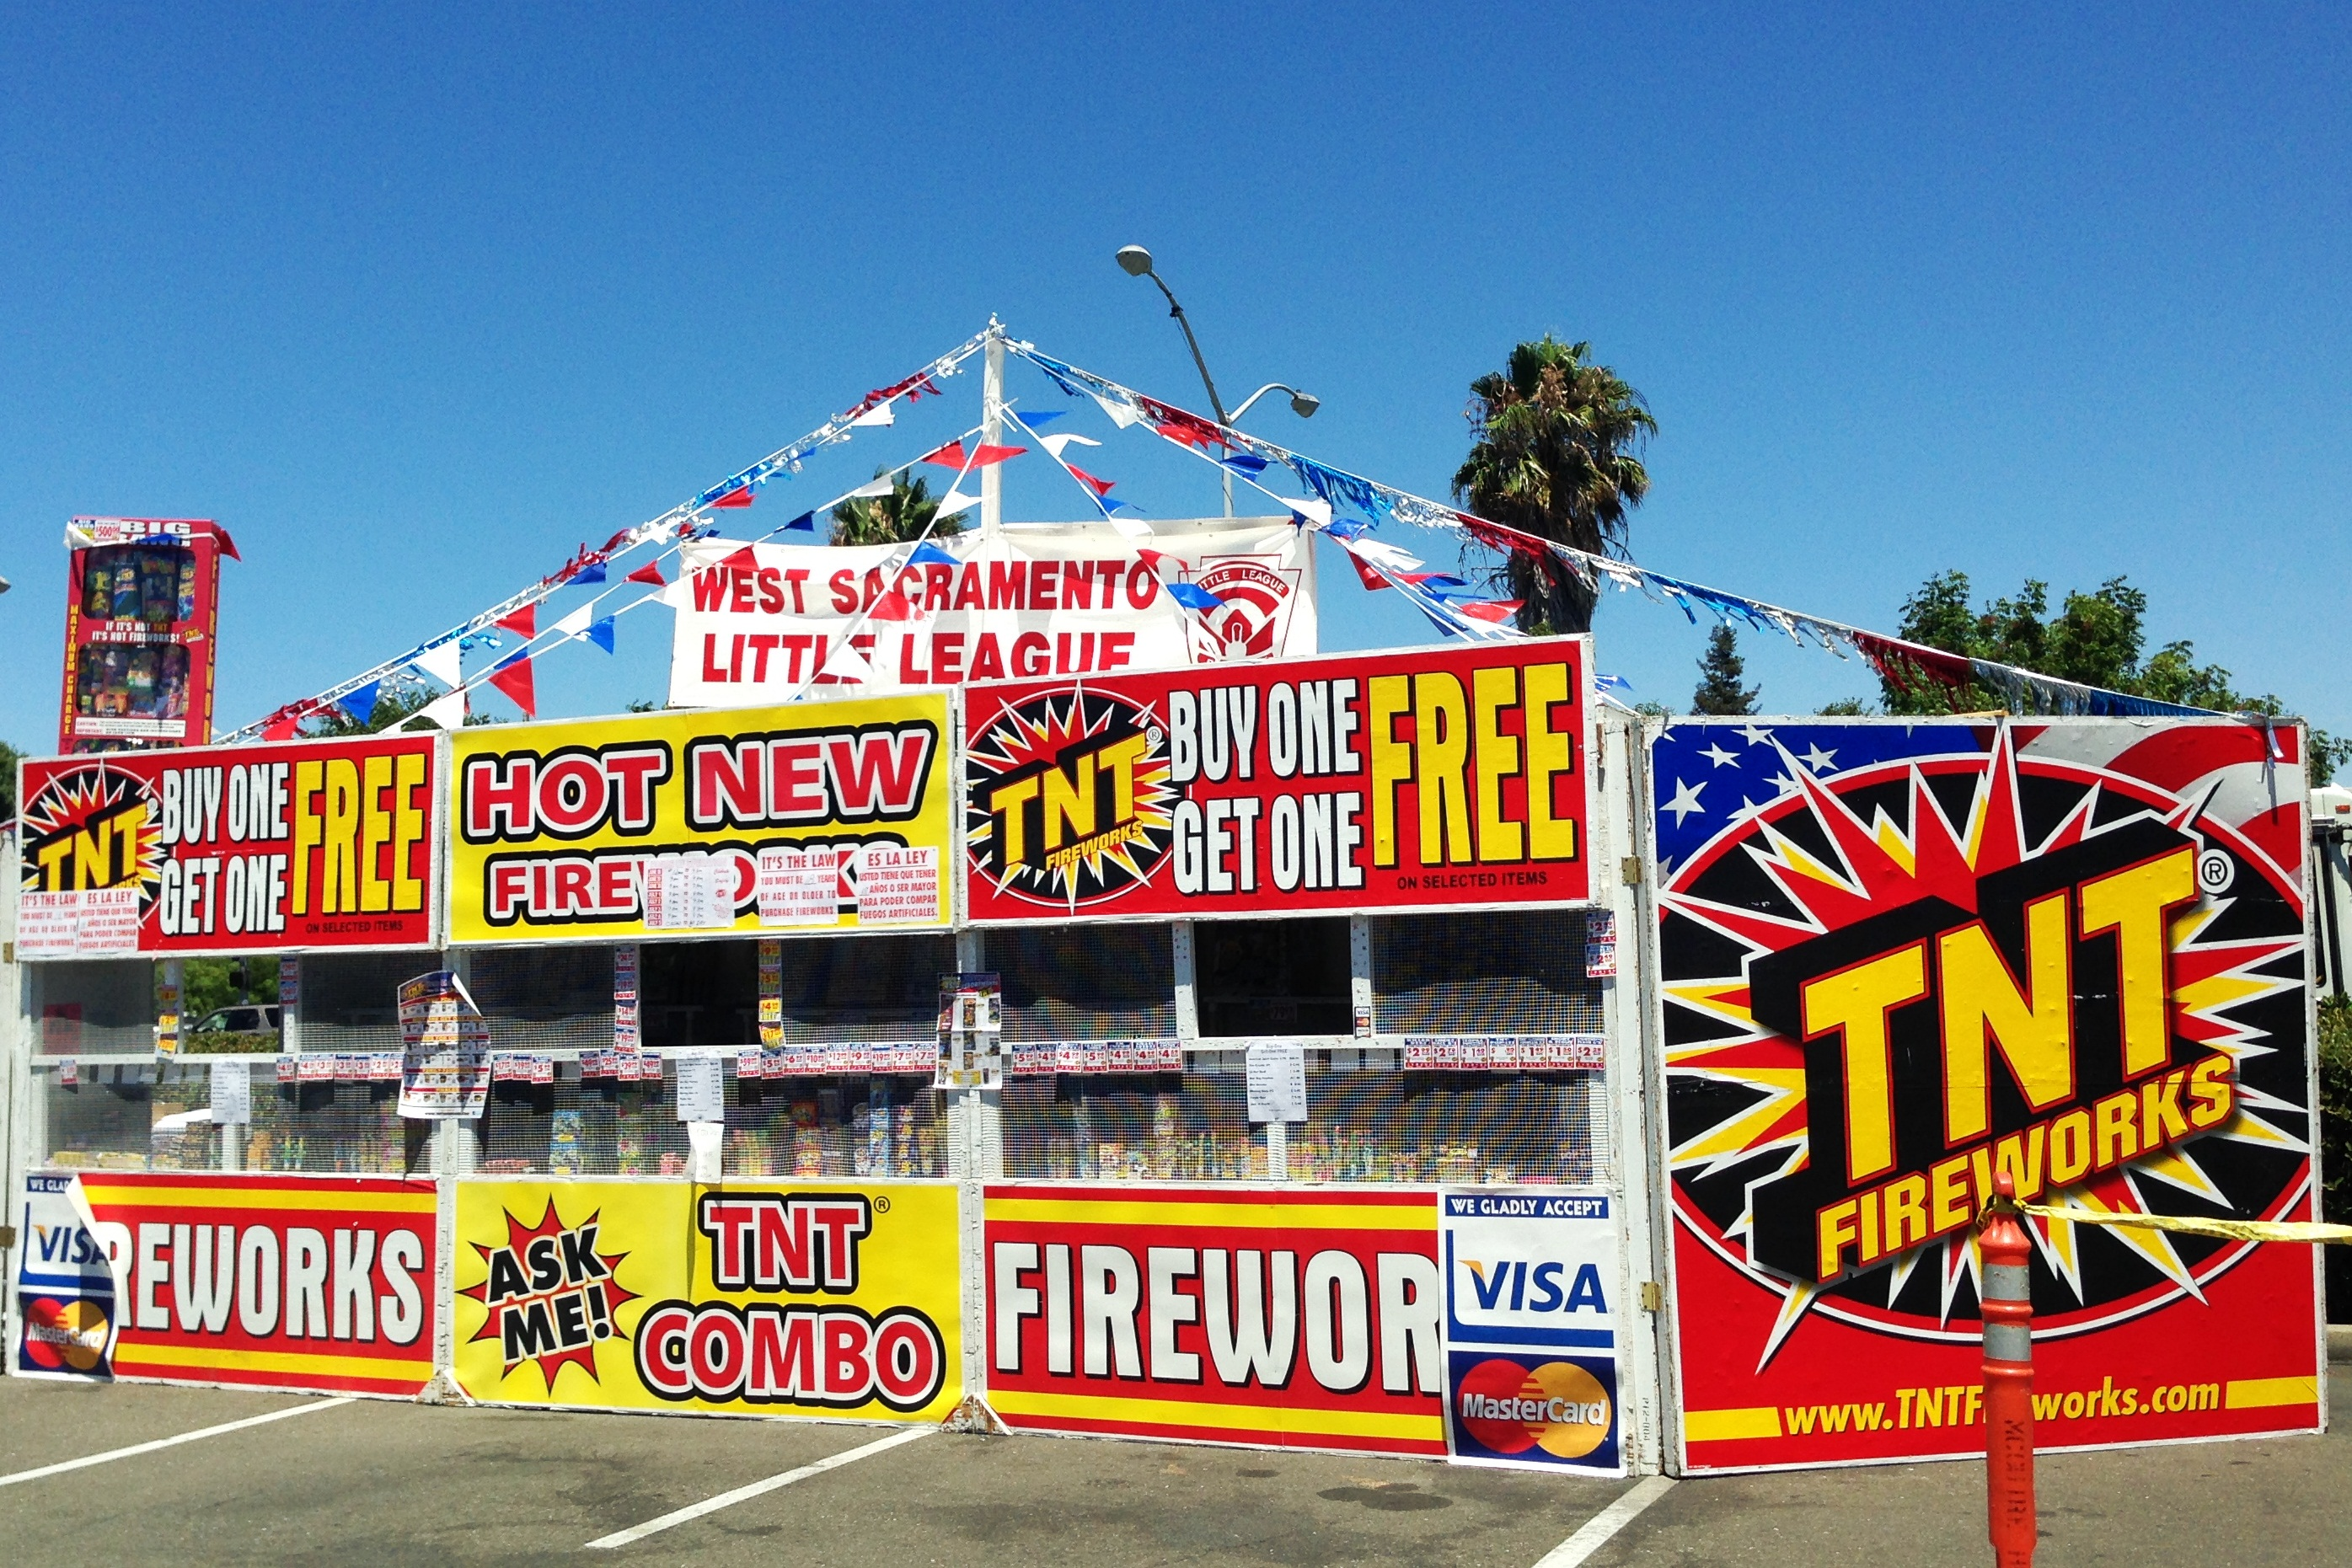 No Grand Finale For Brown's Fireworks Tax Proposal